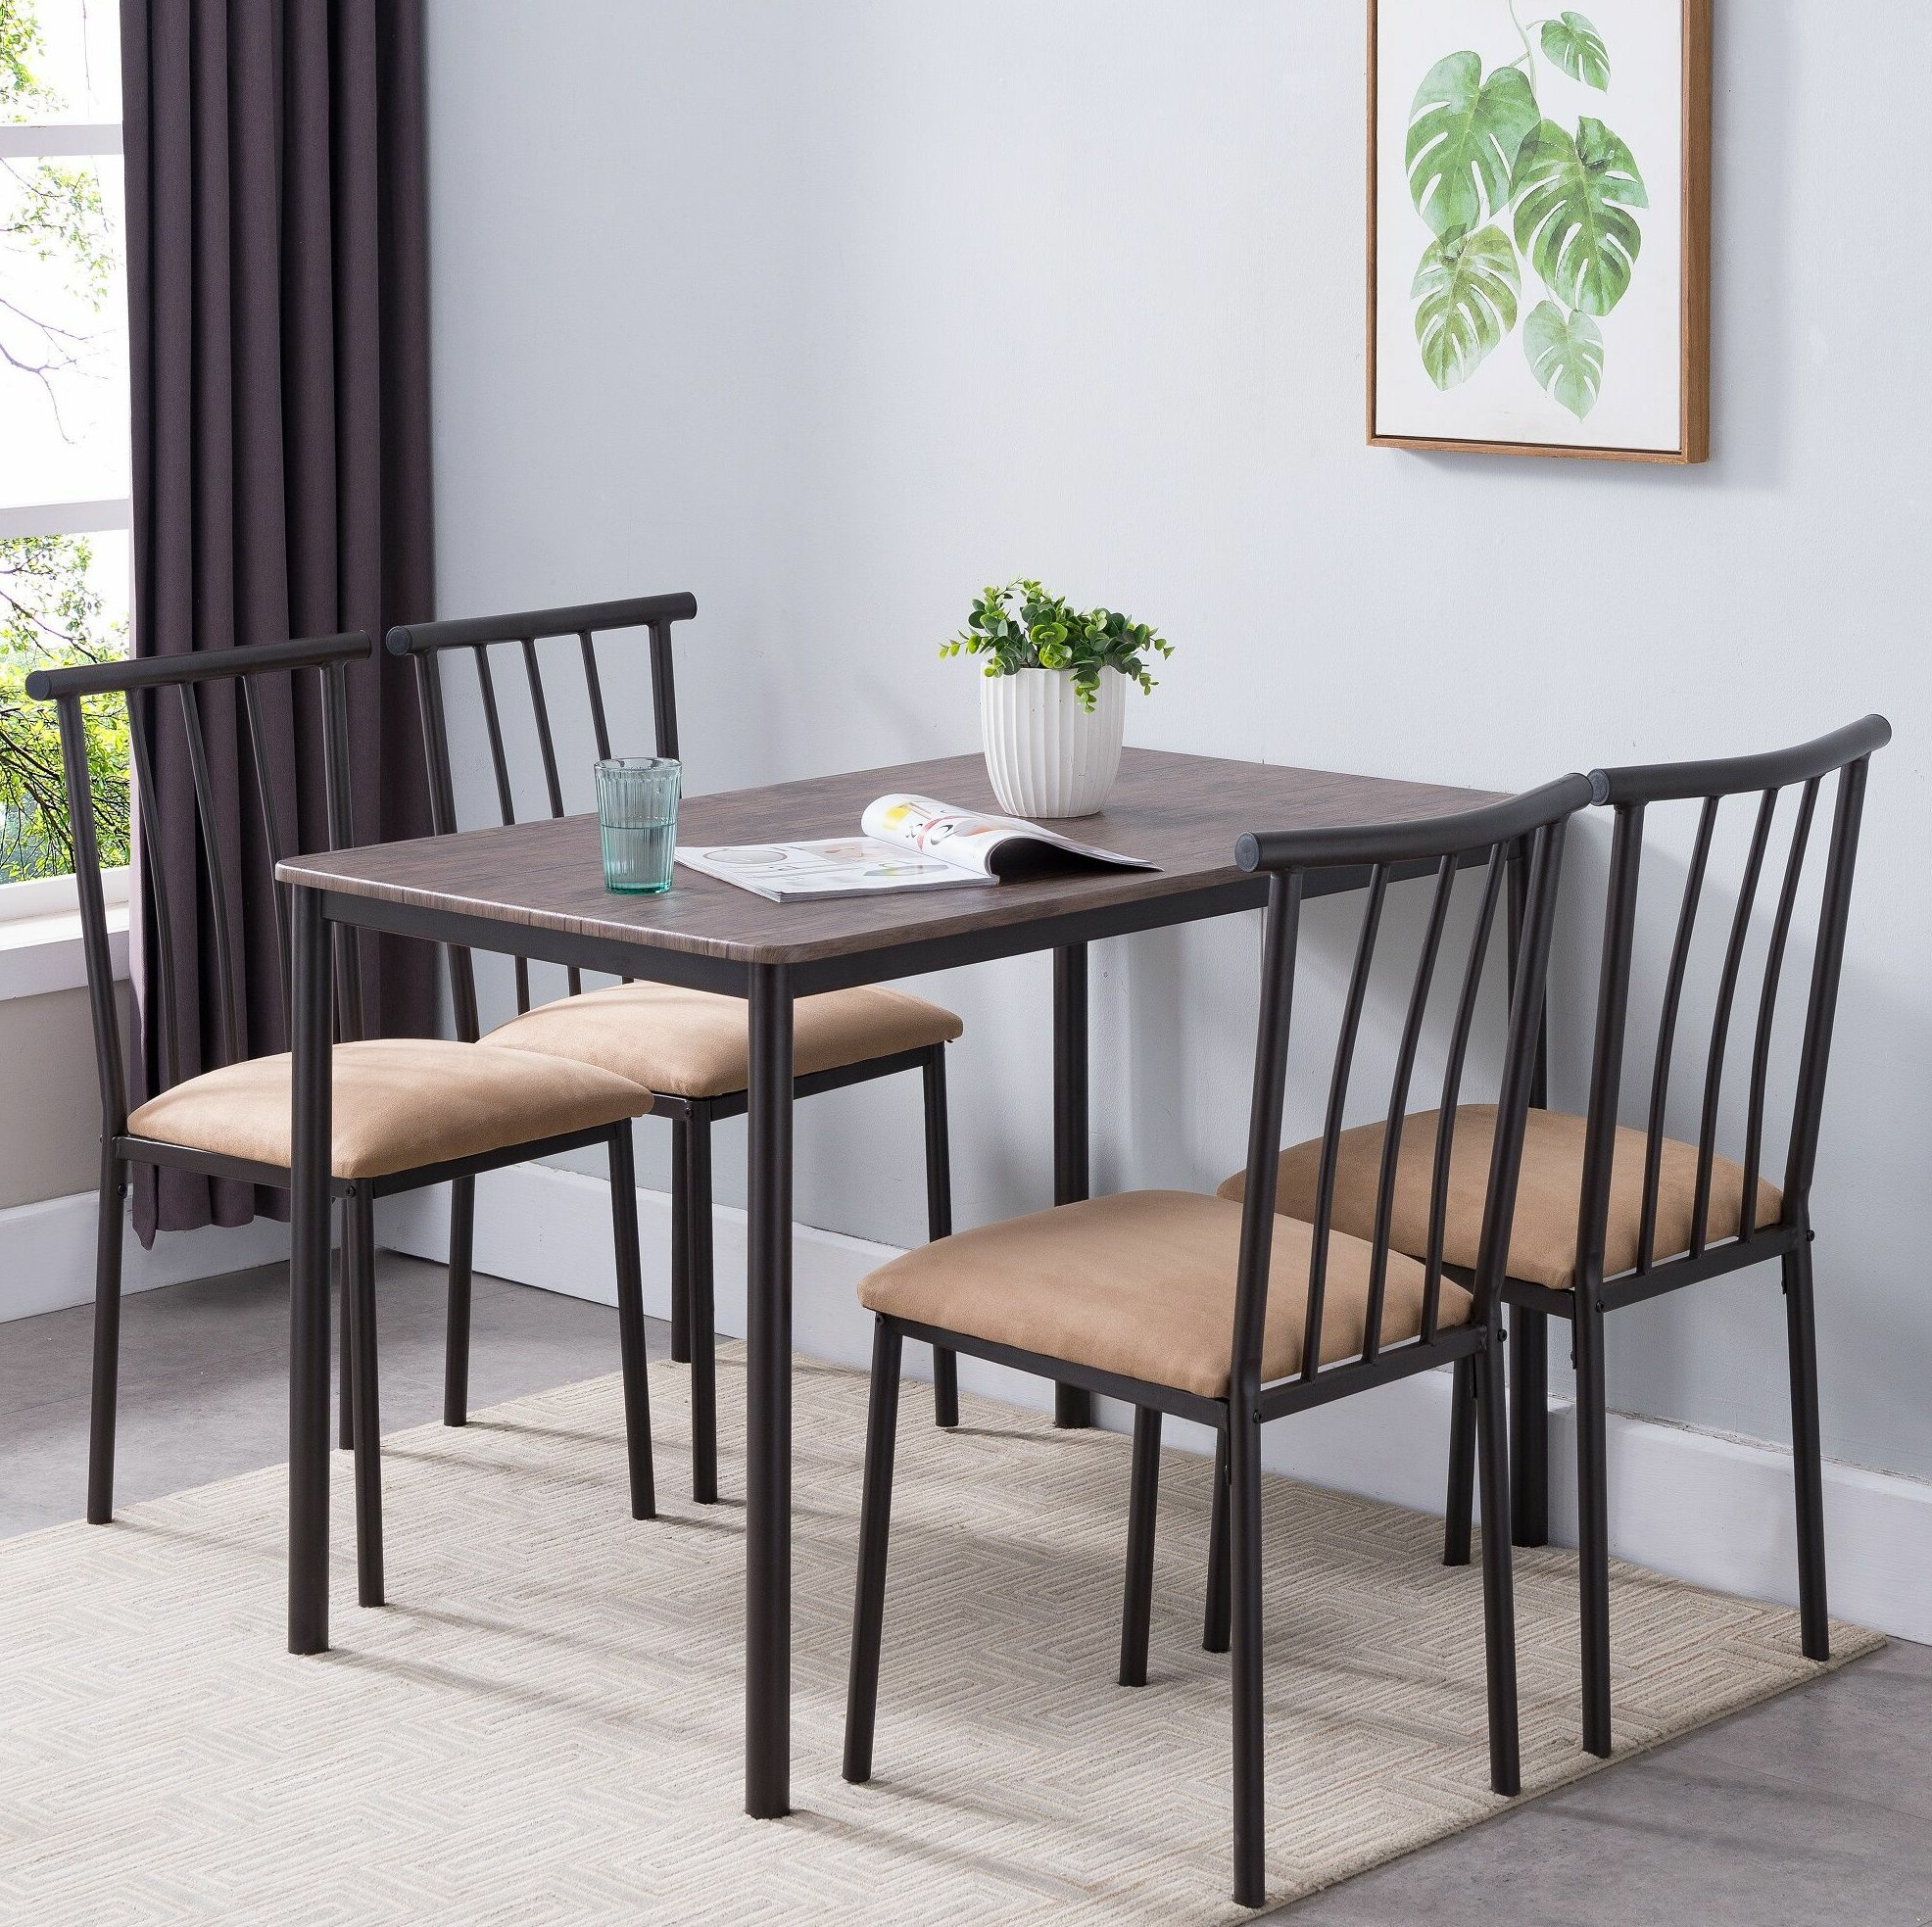 Widely Used Pattonsburg 5 Piece Dining Sets Inside Stclair 5 Piece Dining Set (View 13 of 20)